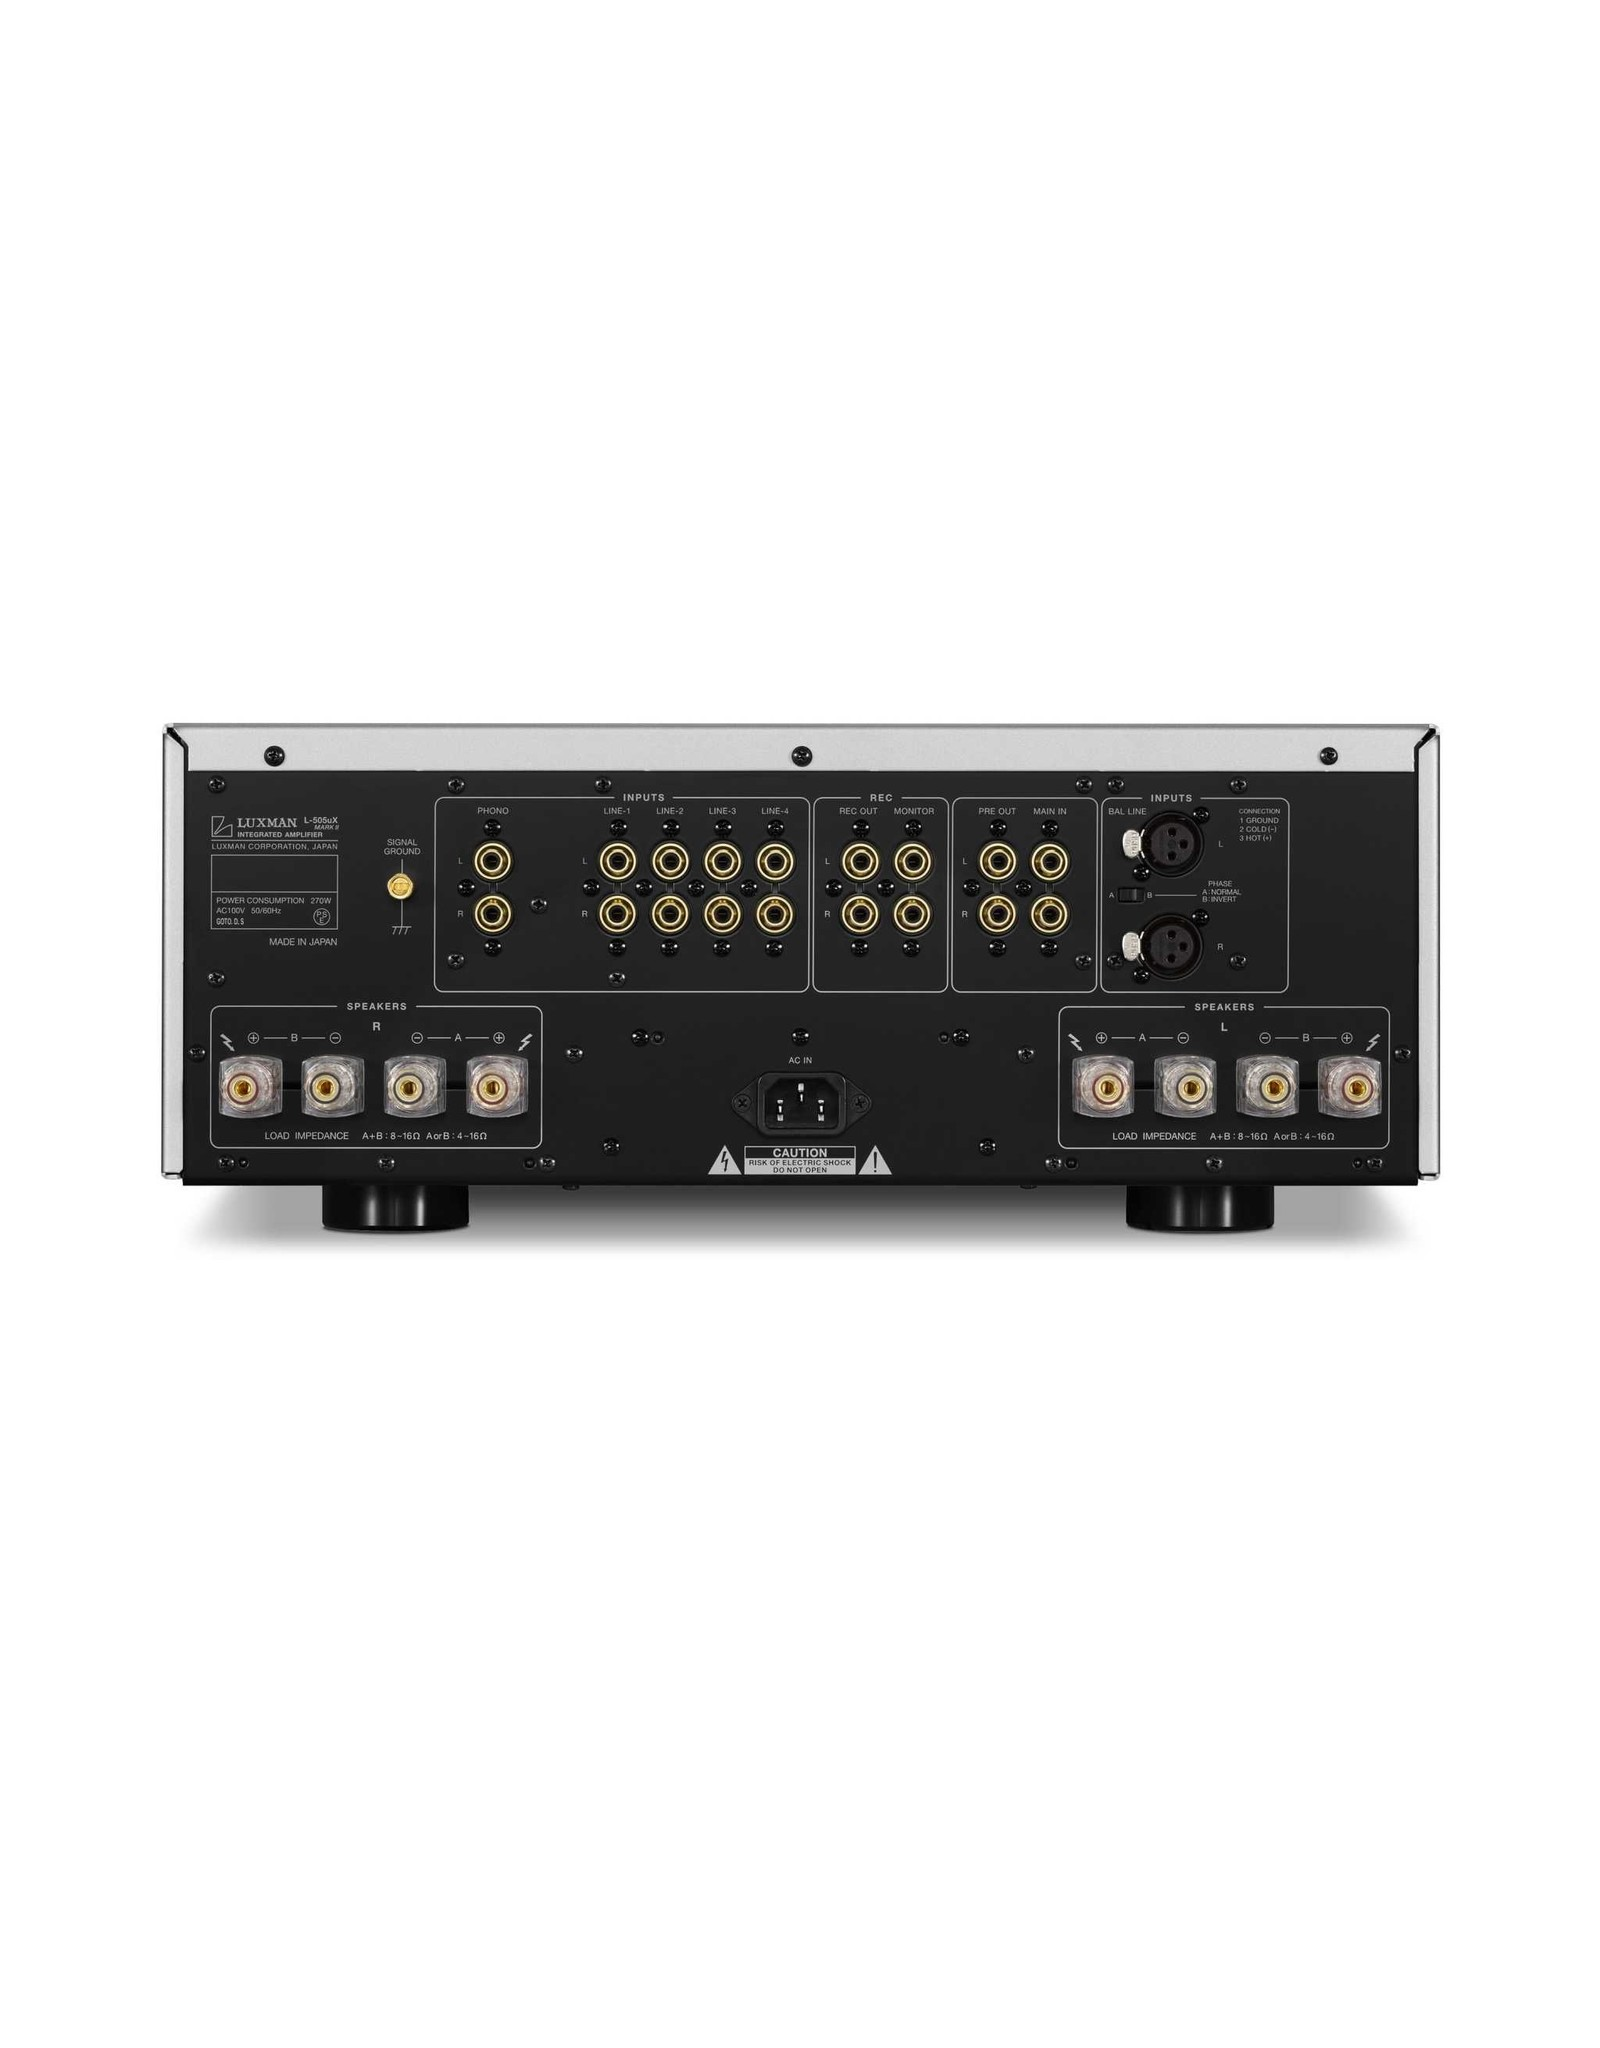 Luxman Luxman L-505uXII Class AB Integrated Amplifier